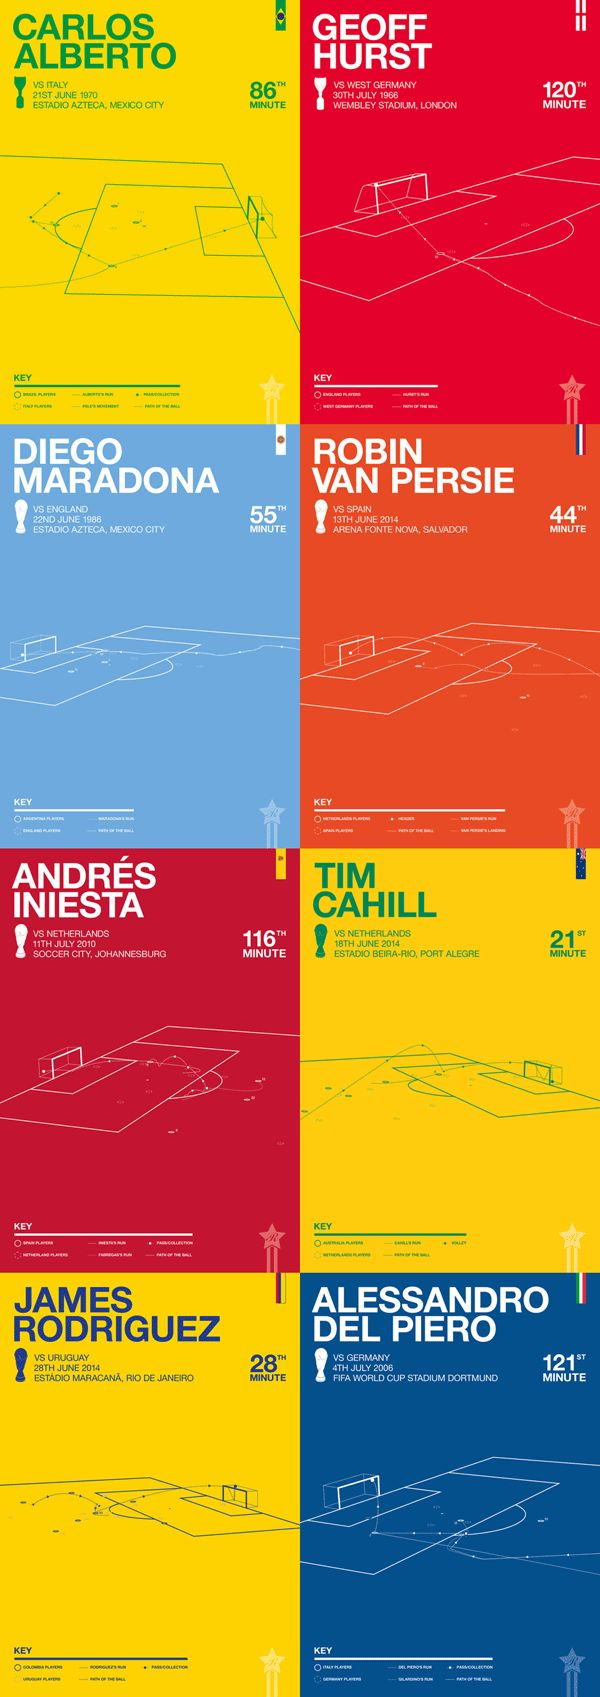 Illustrated prints of historical moments from different football world cups. All print were created by Rick Hincks.